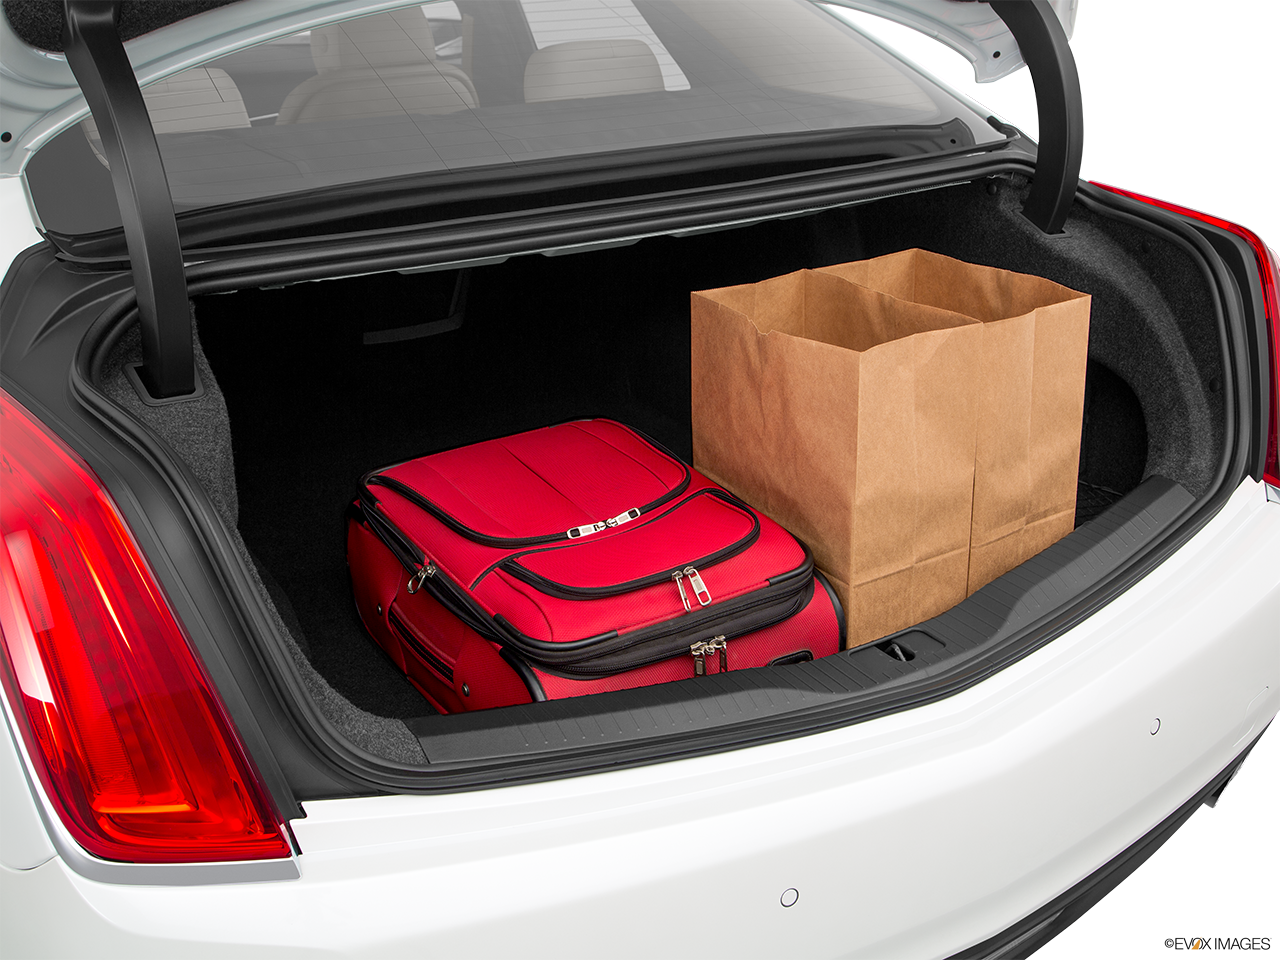 Trunk view of the Cadillac CT6